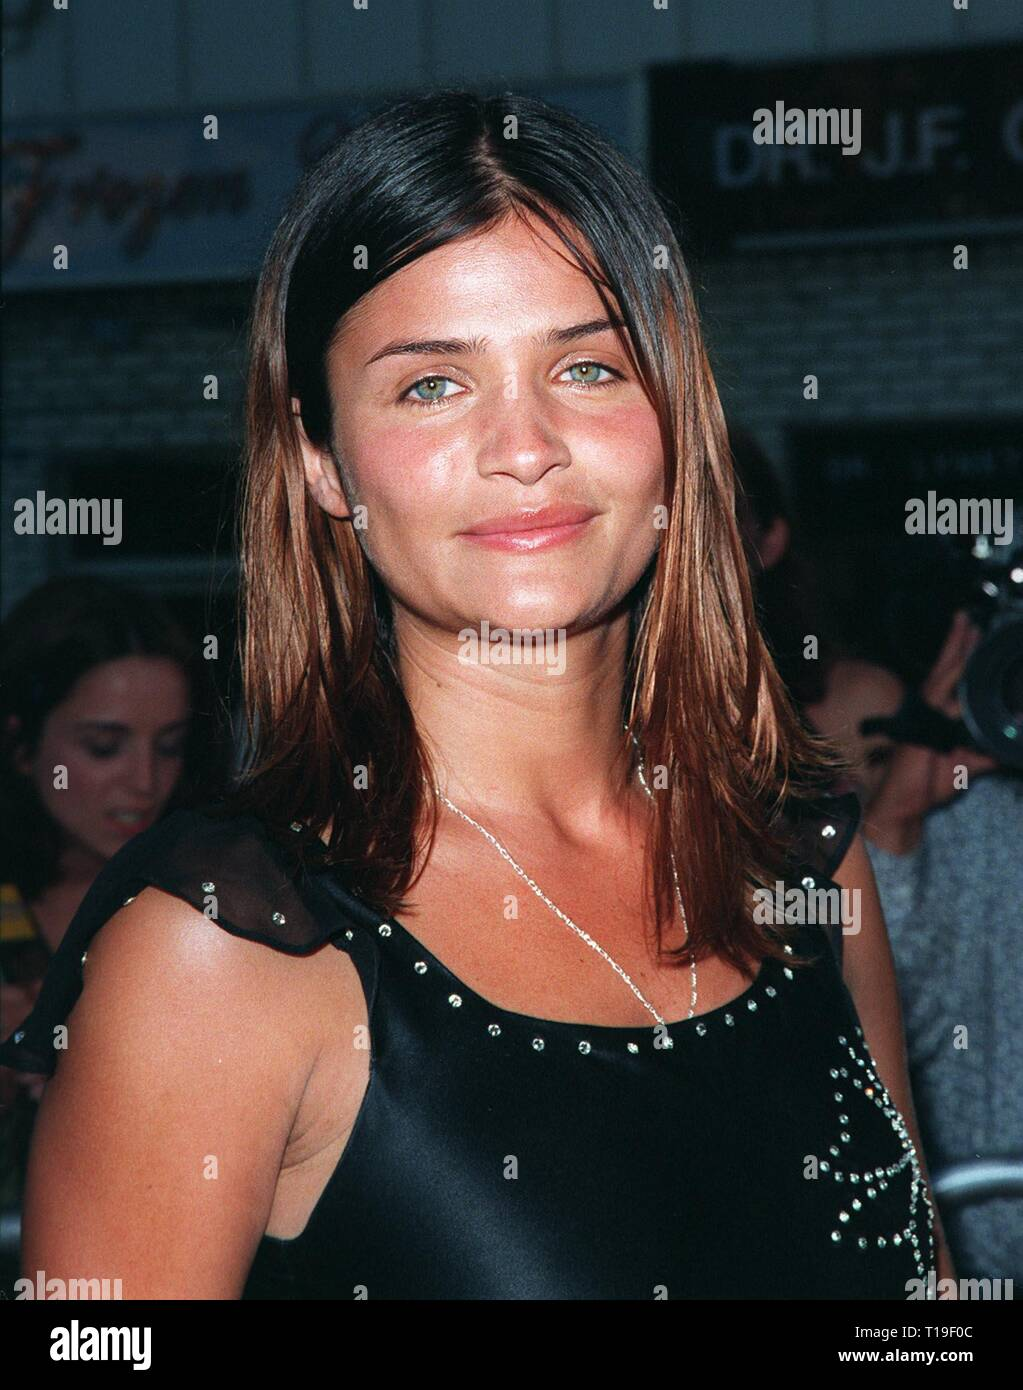 LOS ANGELES, CA - July 9, 1998: Supermodel HELENA CHRISTIANSEN at the world premiere, in Los Angeles, of 'There's Something About Mary.' - Stock Image